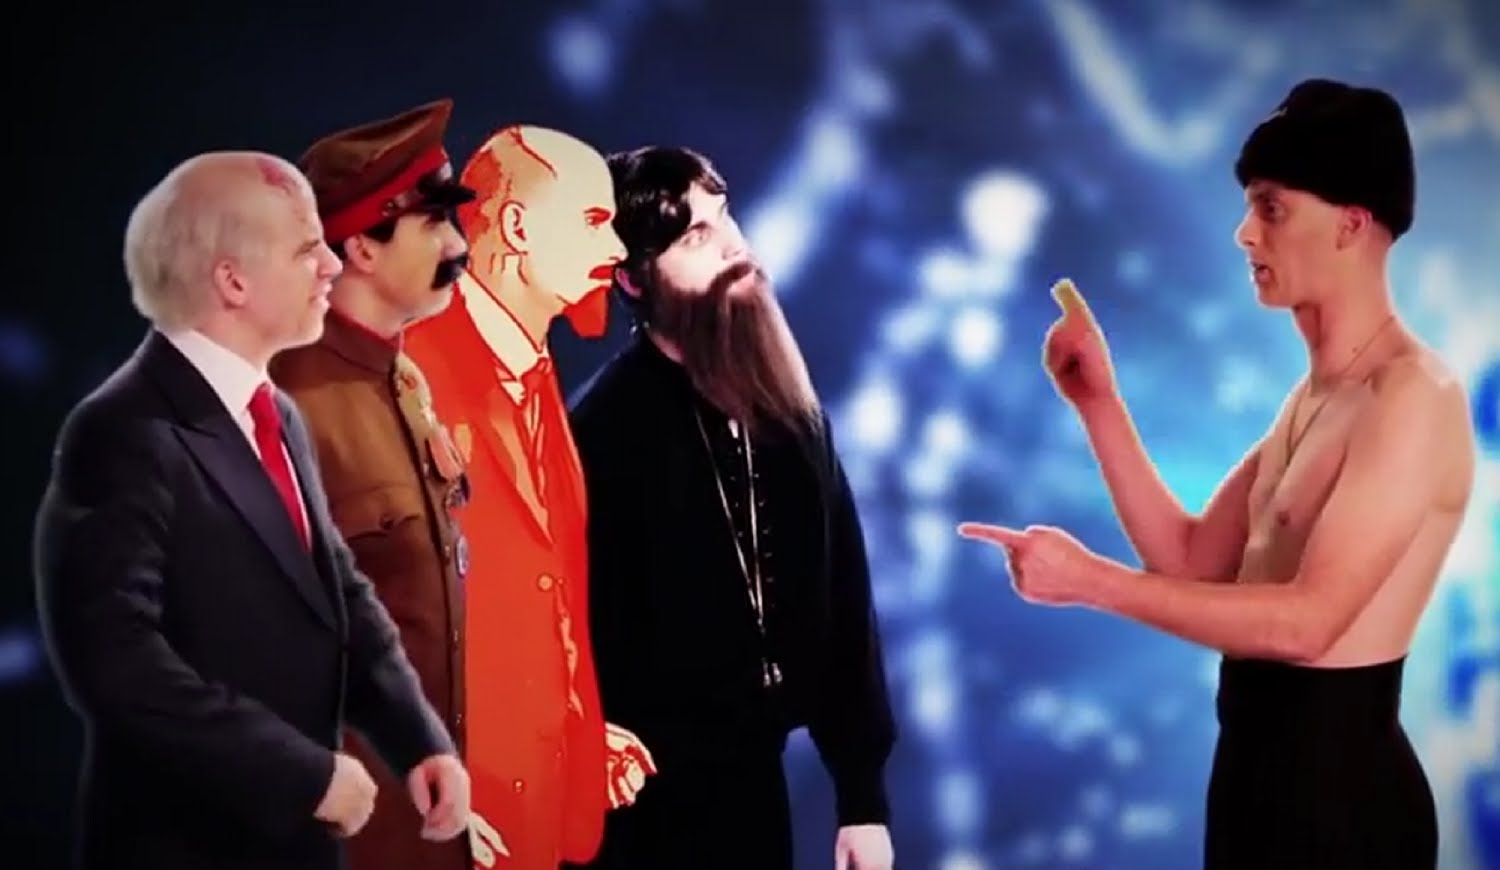 Epic Rap Battles. Rasputin vs Stalin